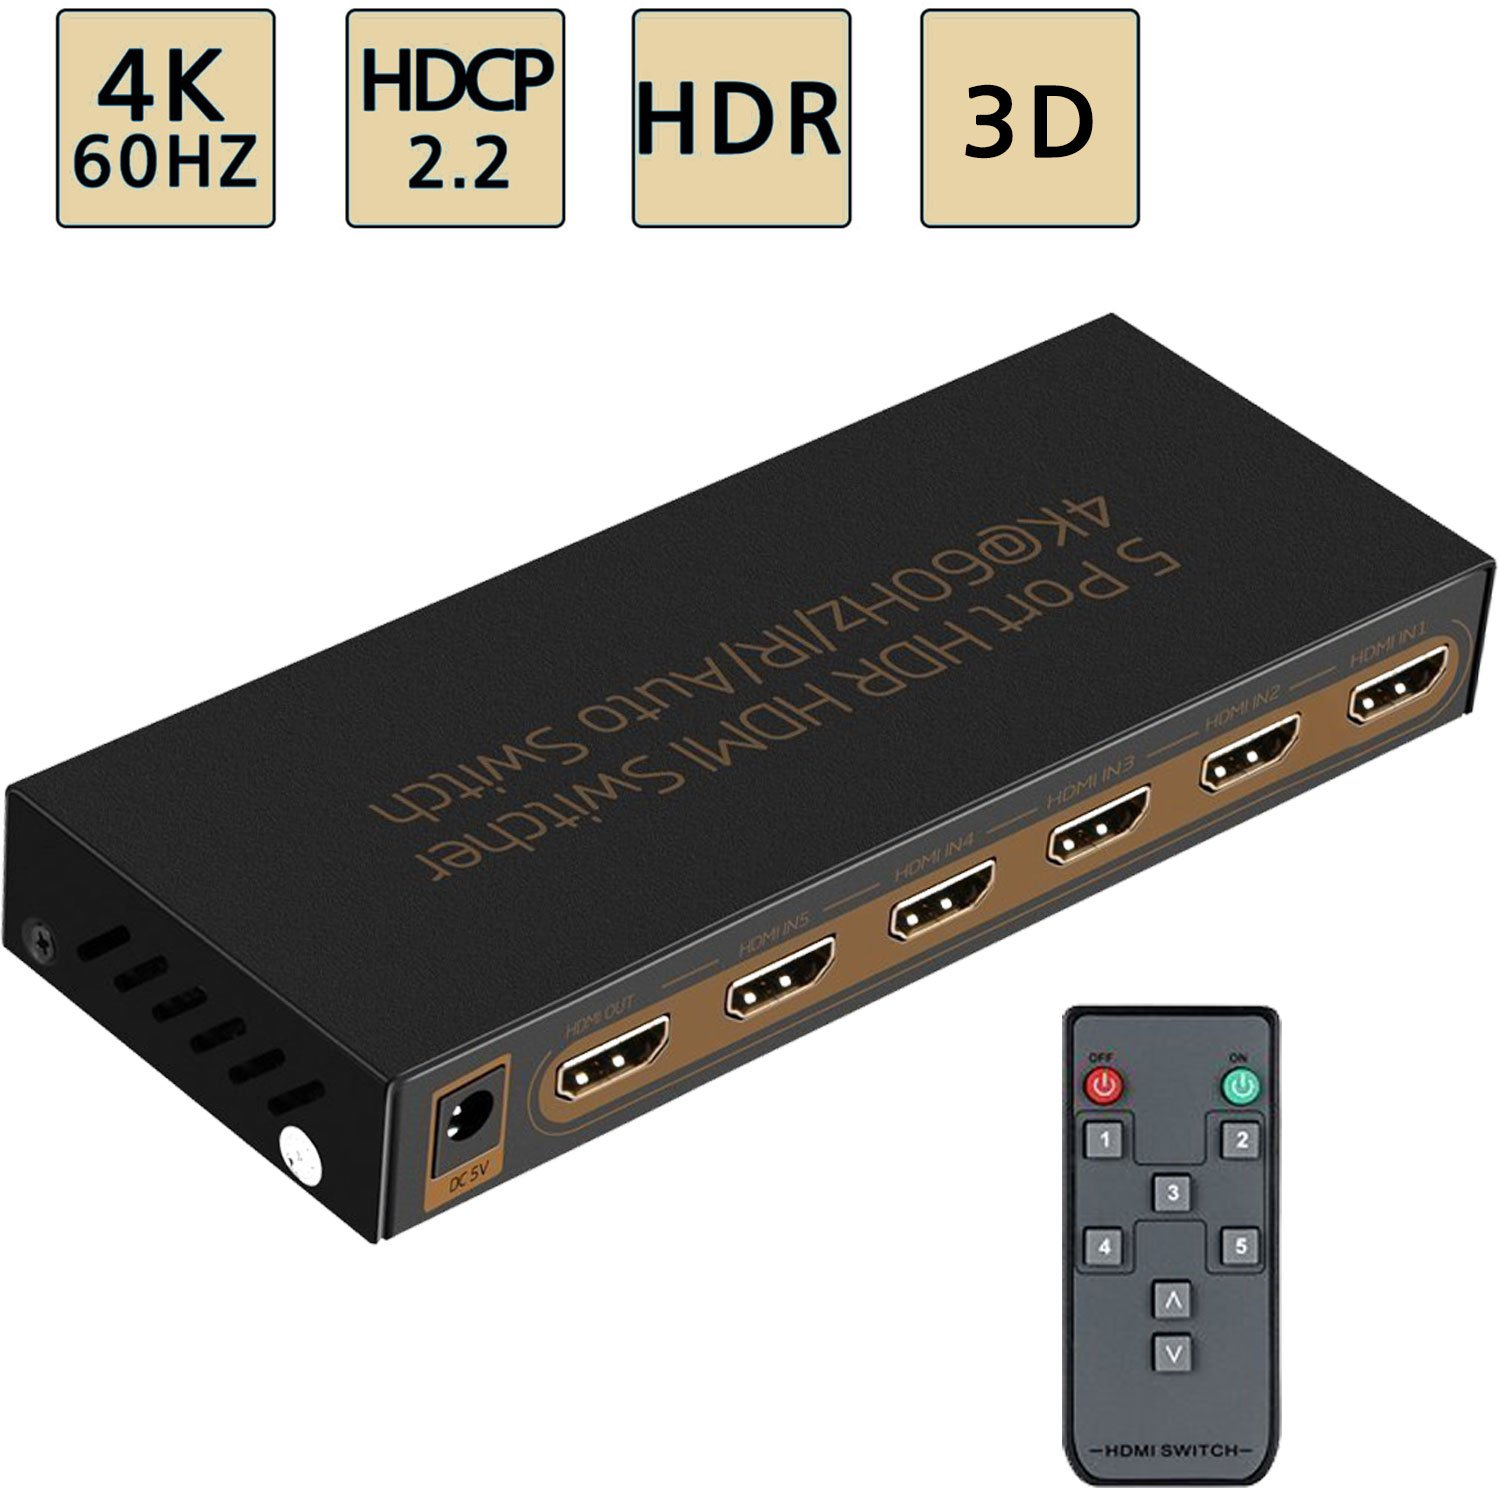 4K@60Hz HDMI Switch 5x1 Awakelion Premium Quality 5 in 1 Out Switcher with IR Remote Support,HDCP 2.2,UHD,HDR,Full HD